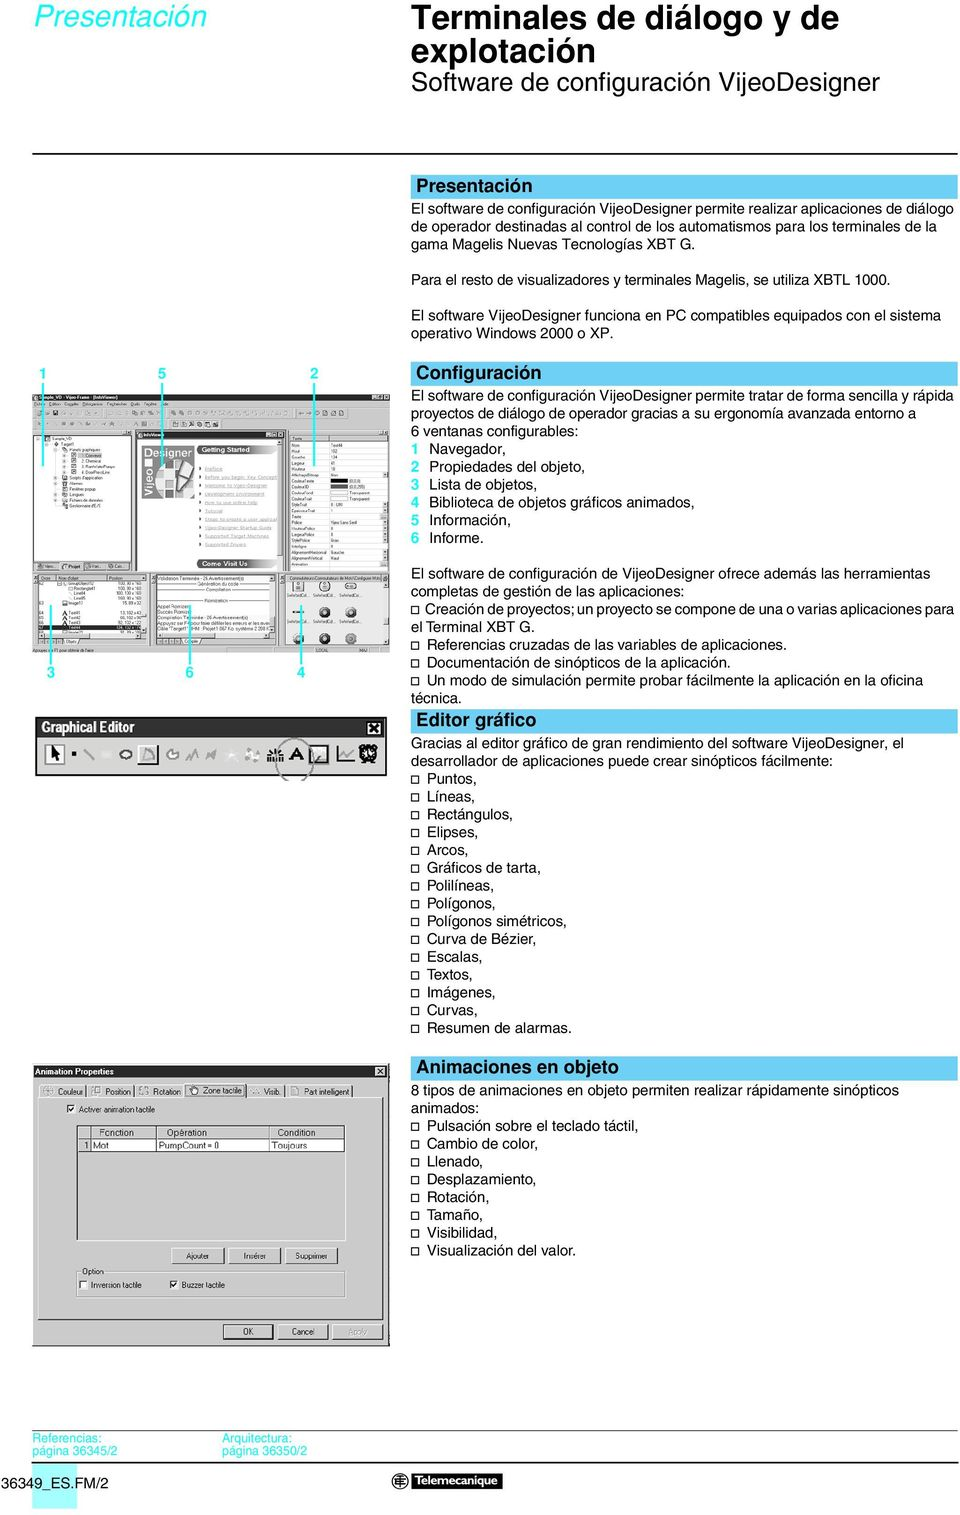 El software VijeoDesigner funciona en PC compatibles equipados con el sistema operativo Windows 000 o XP.